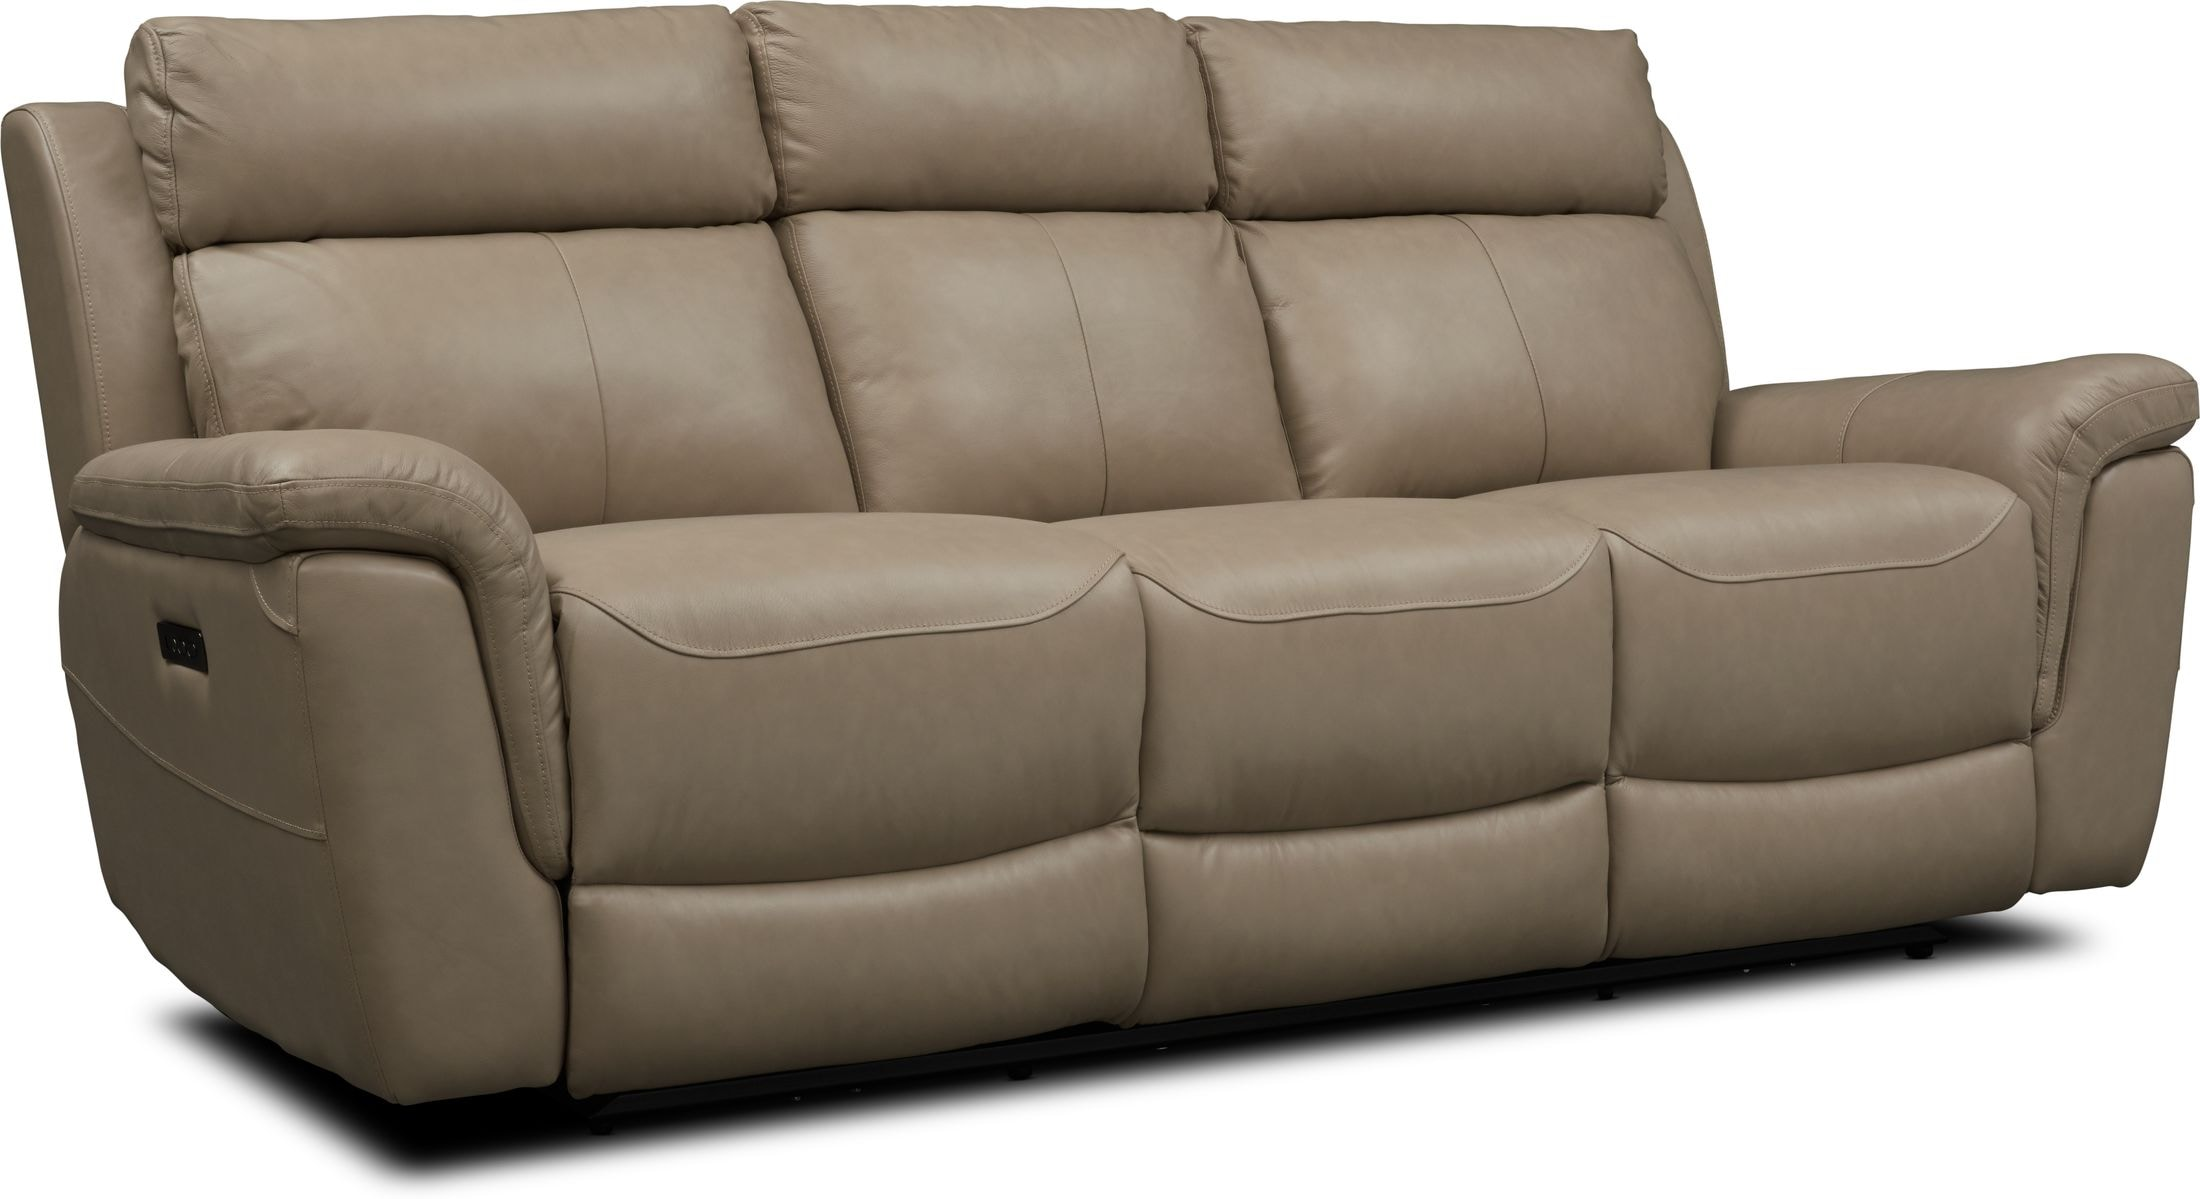 Living Room Furniture - Brooklyn Dual-Power Reclining Sofa